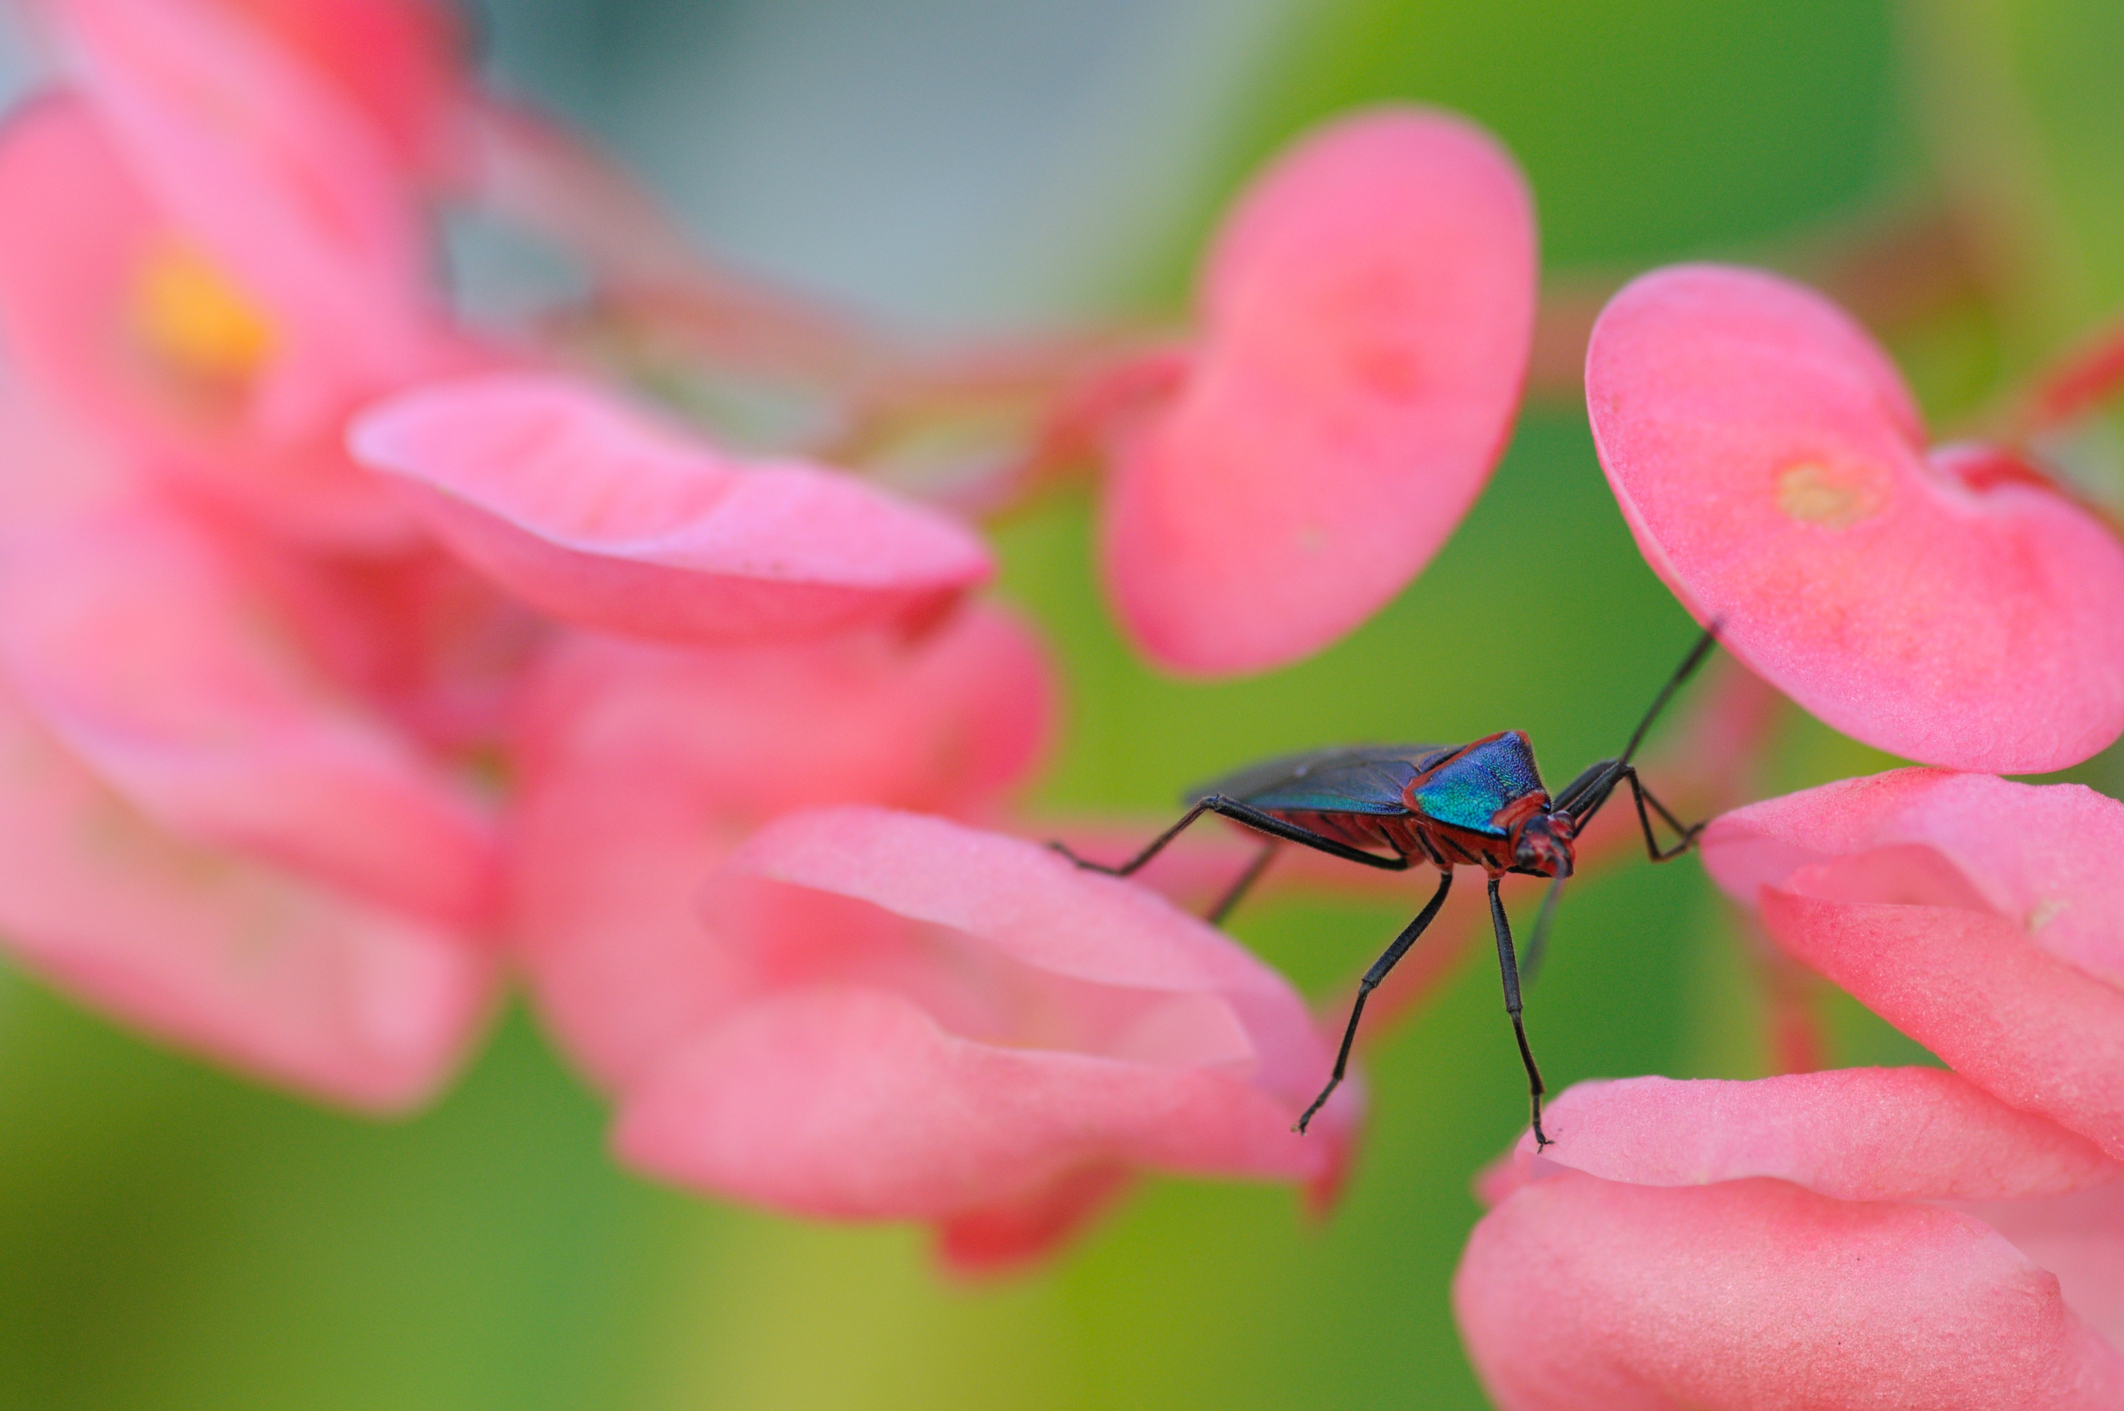 A colorful triatomid bug (also known as assassin bug or kissing bug) on pink begonia flowers. Taken in São Paulo, Brazil.